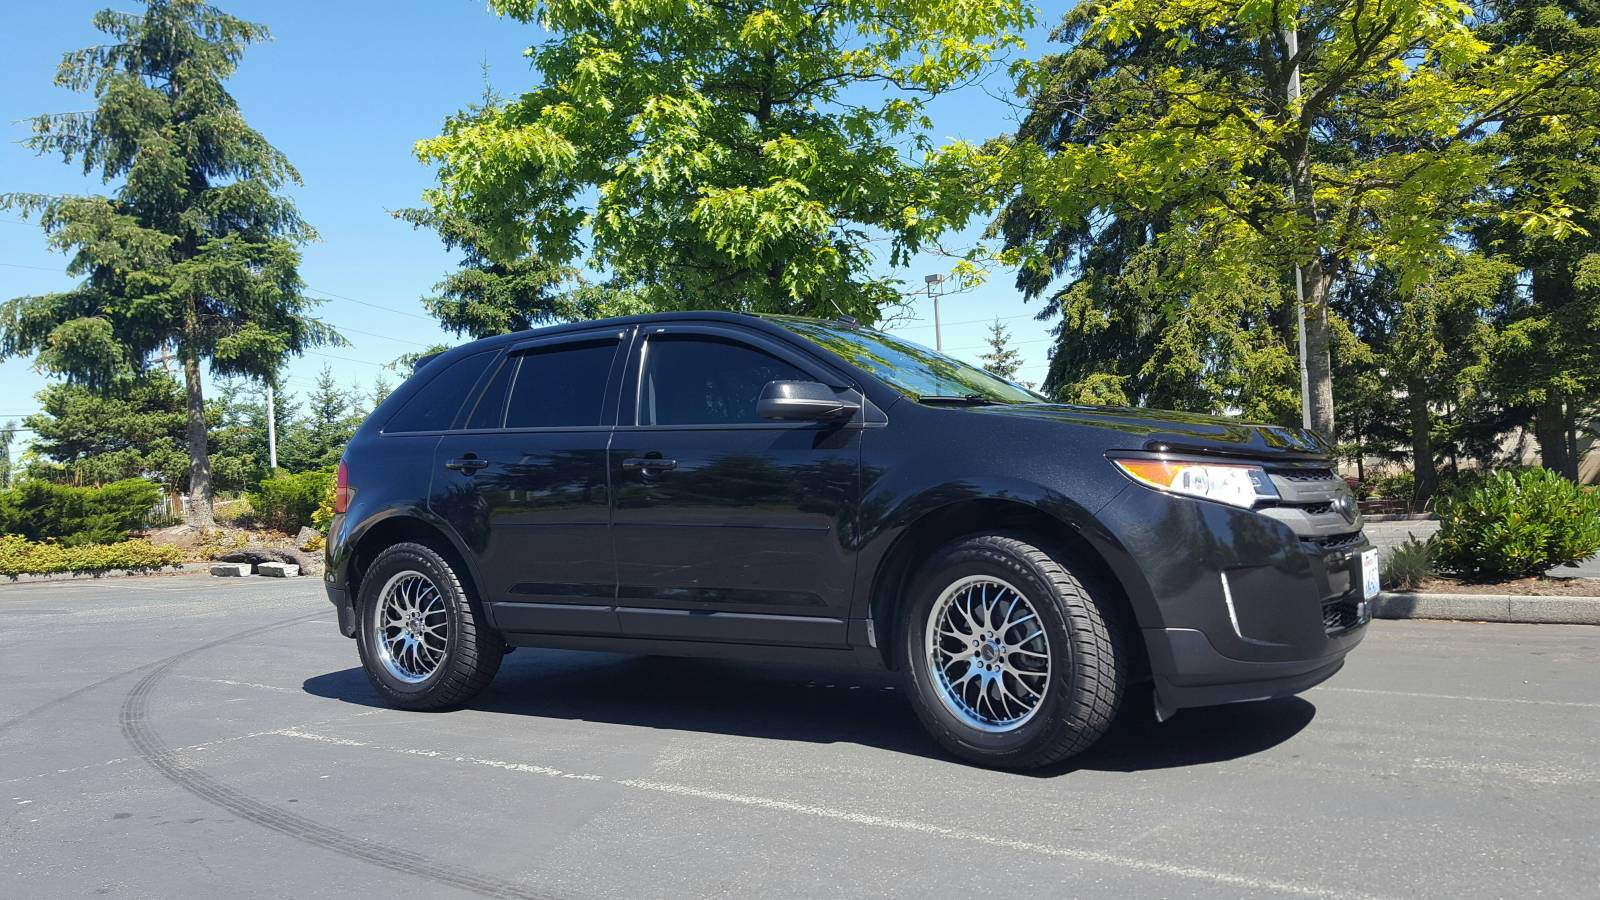 2013 ford edge3 pnwedge photo gallery ford edge forum. Black Bedroom Furniture Sets. Home Design Ideas